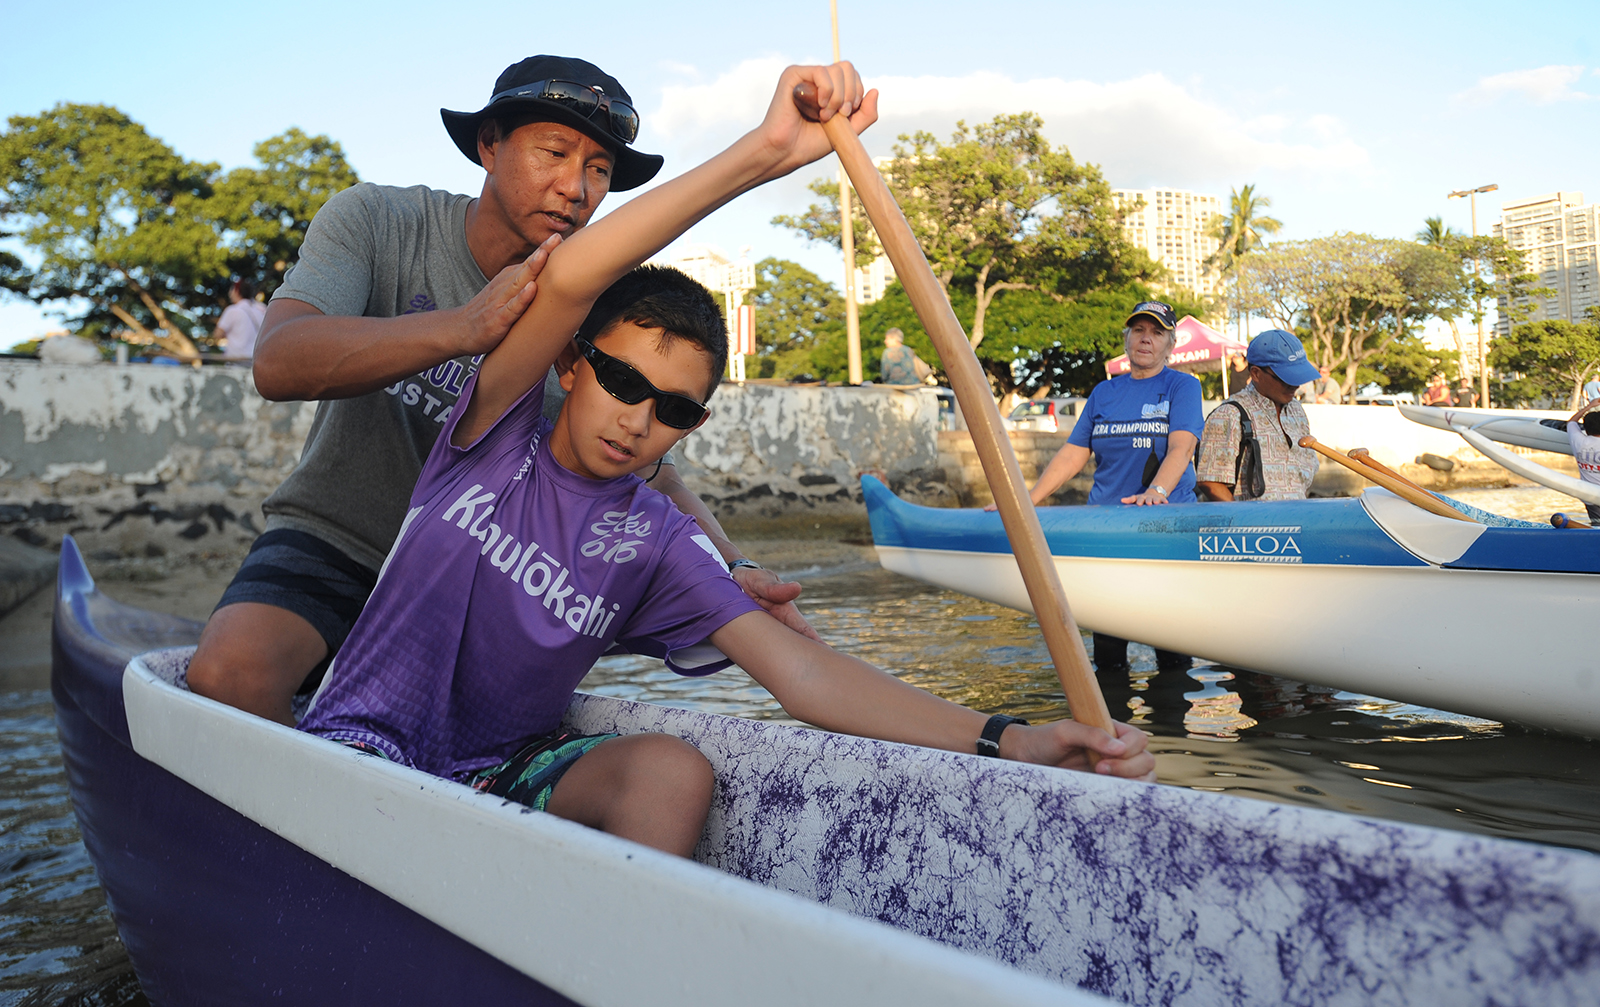 <p>Youth paddling coach Kevin Kam instructs his son, Shafer, in stroking technique during a practice session.</p>